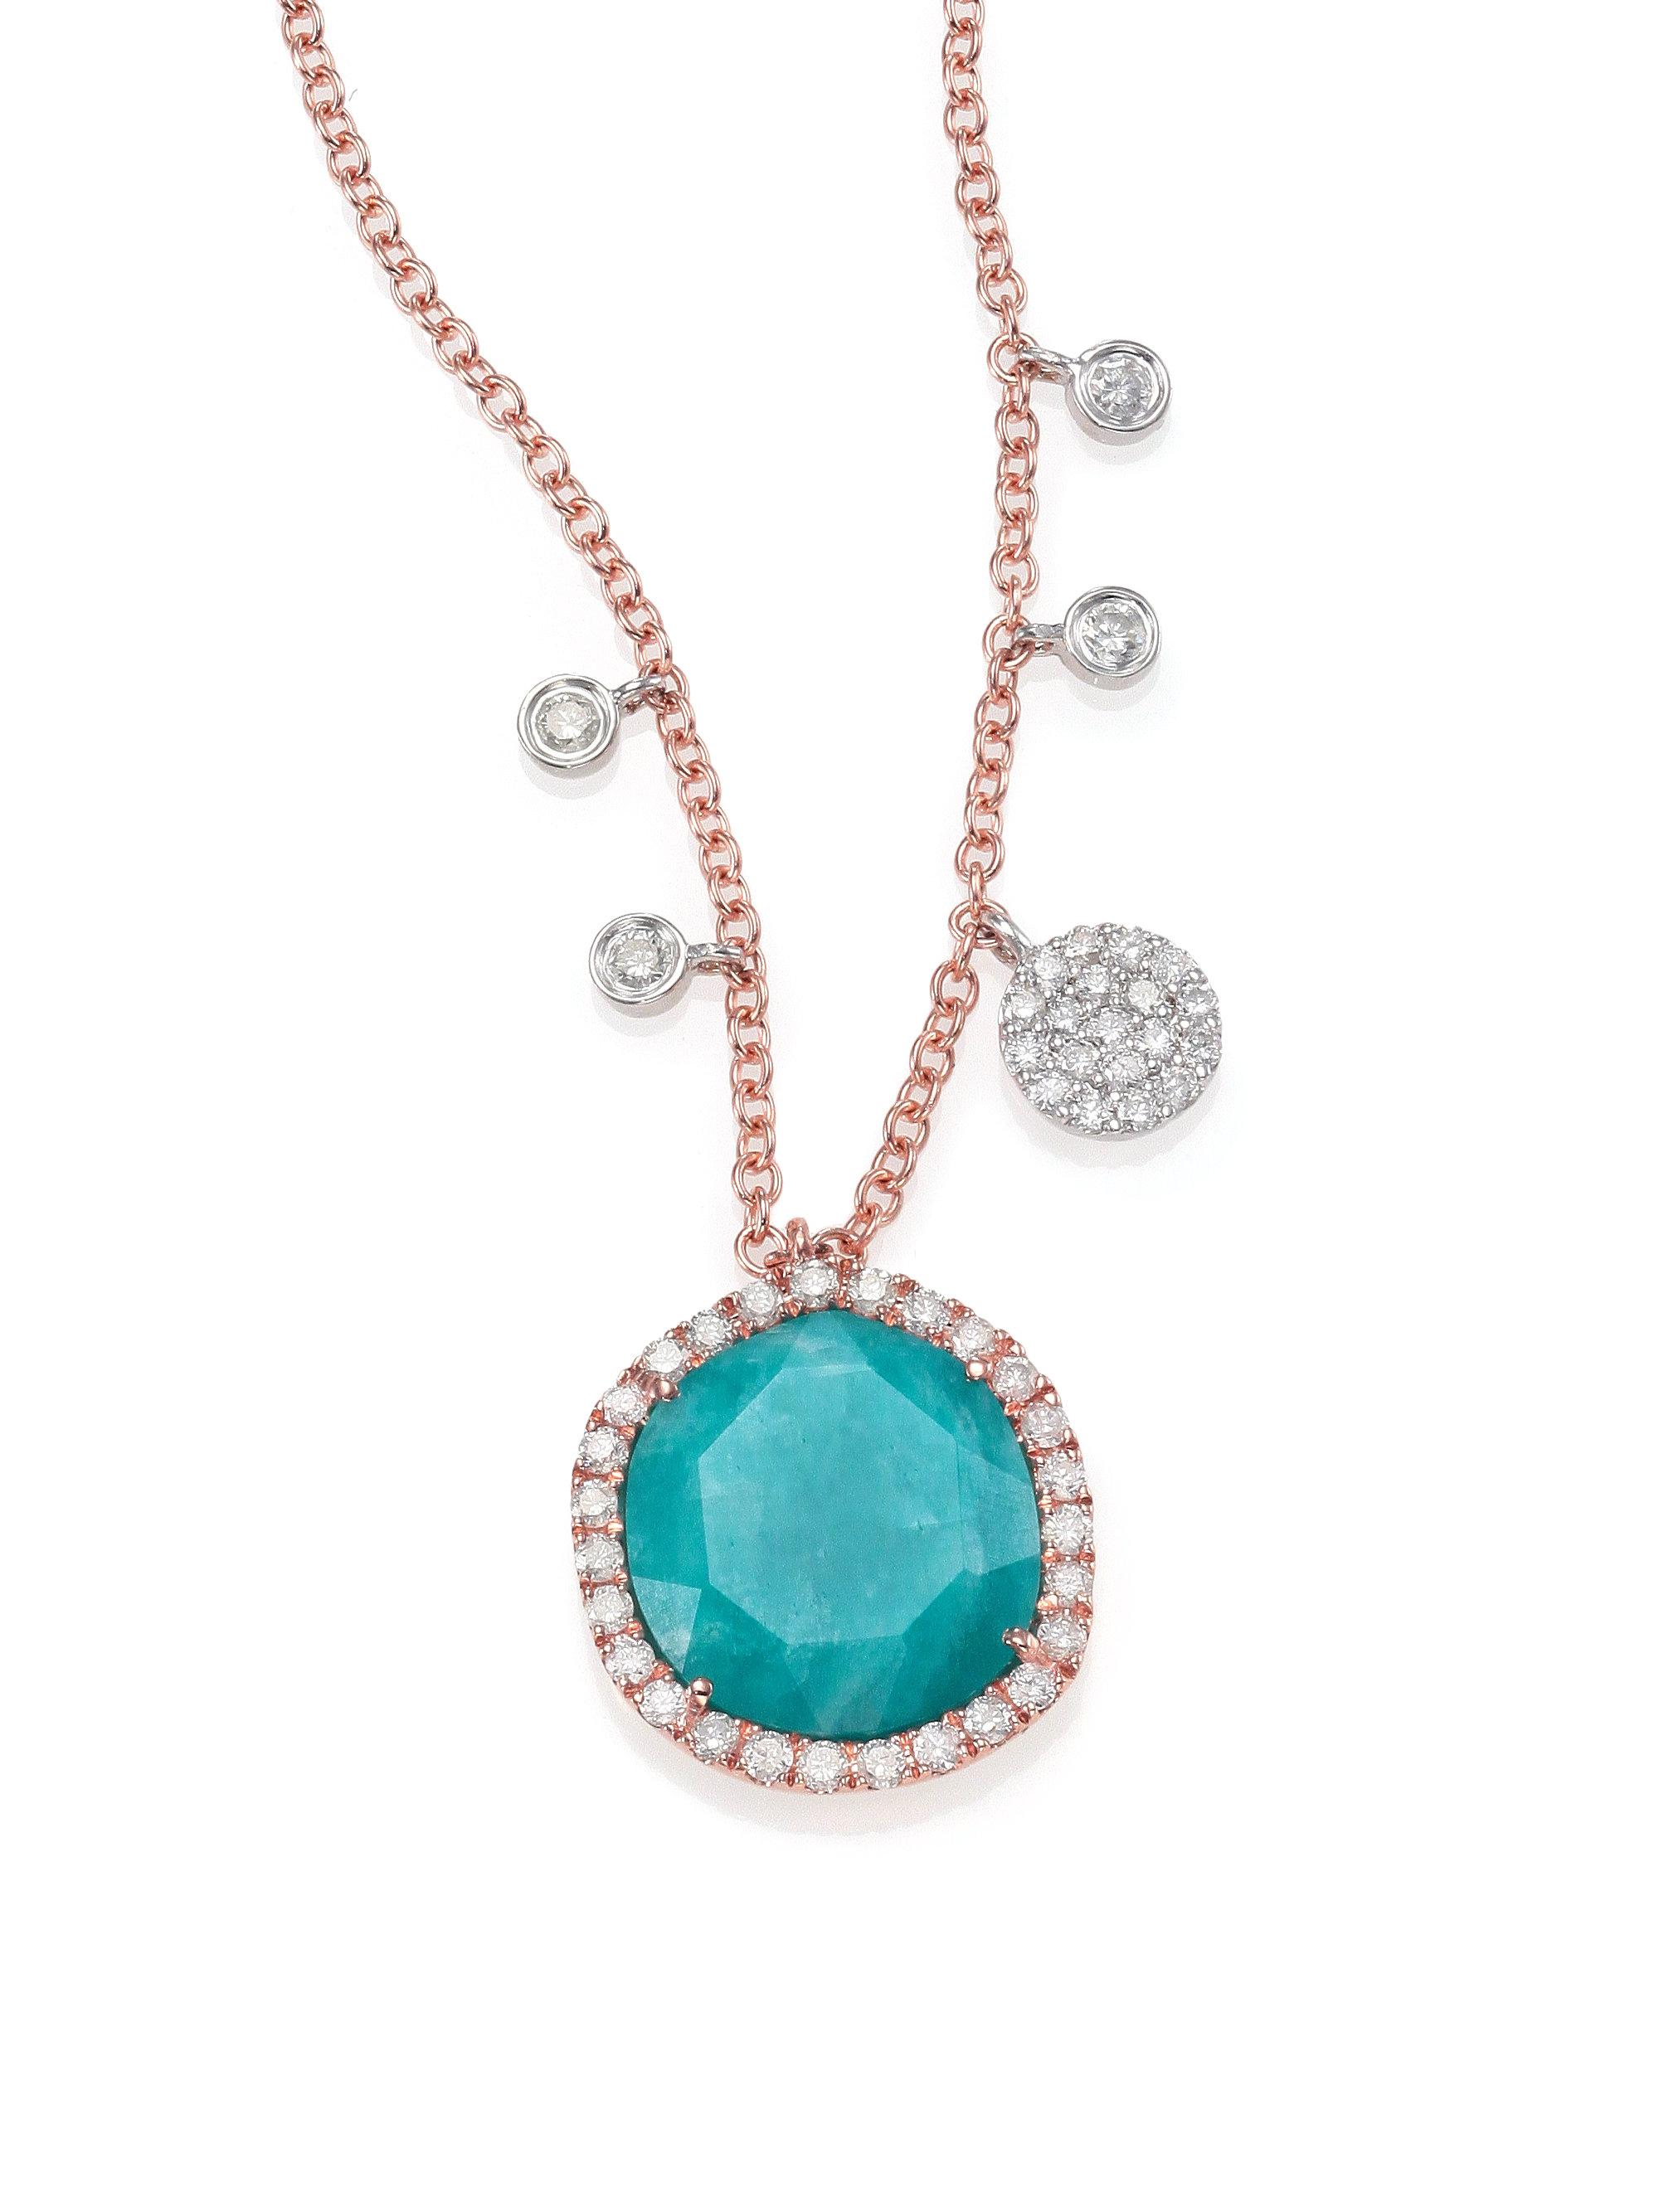 melanie mkindred by product allure necklace amazonite june